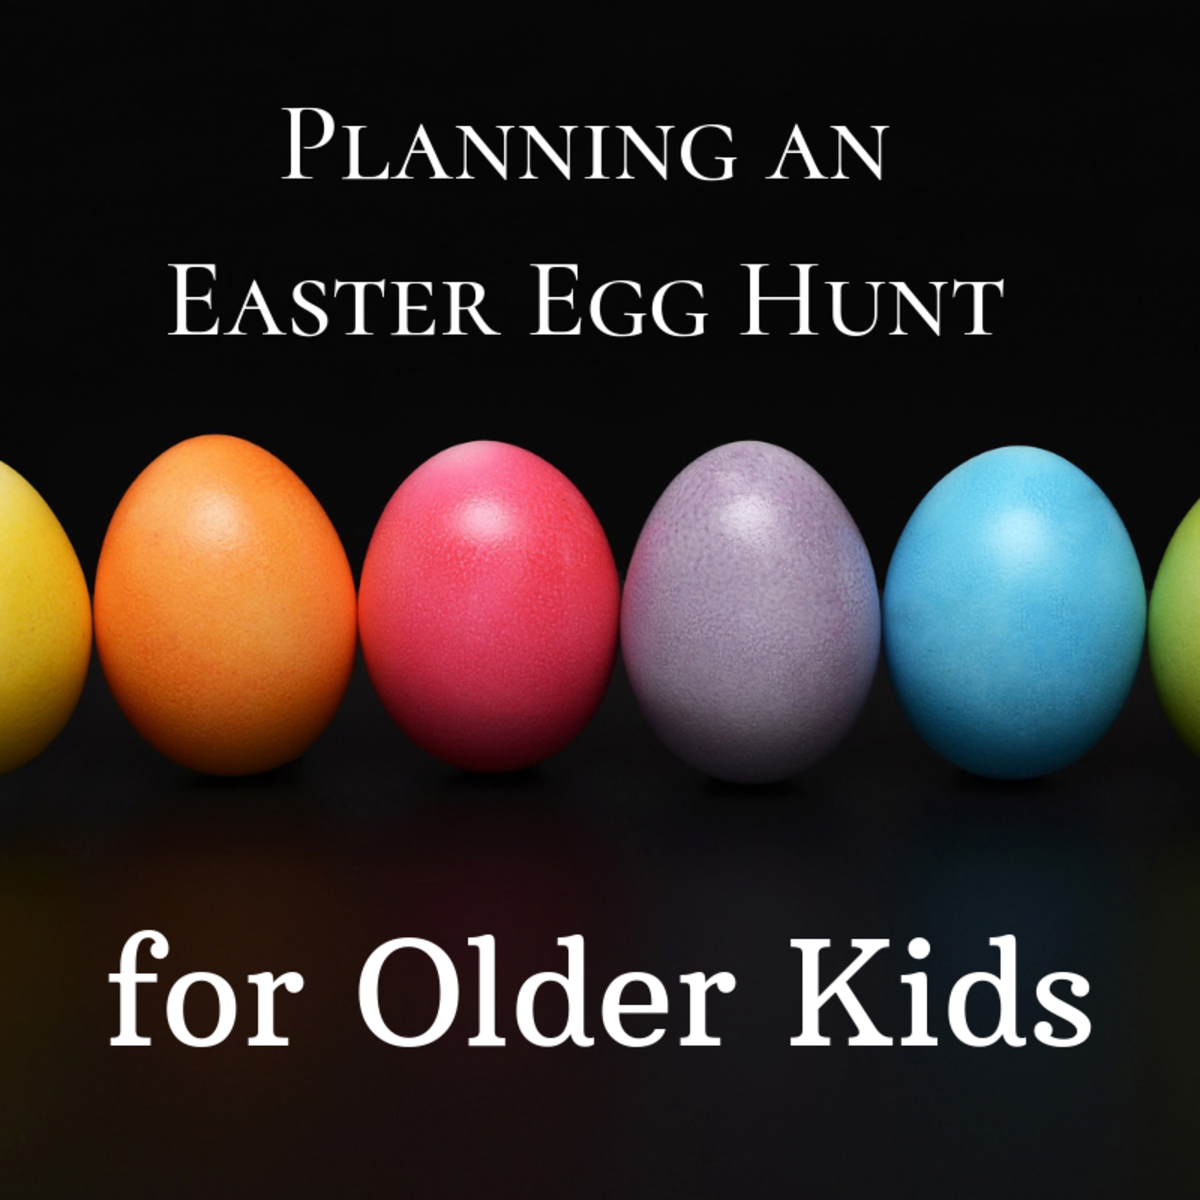 How to Plan an Easter Egg Hunt for Older Kids